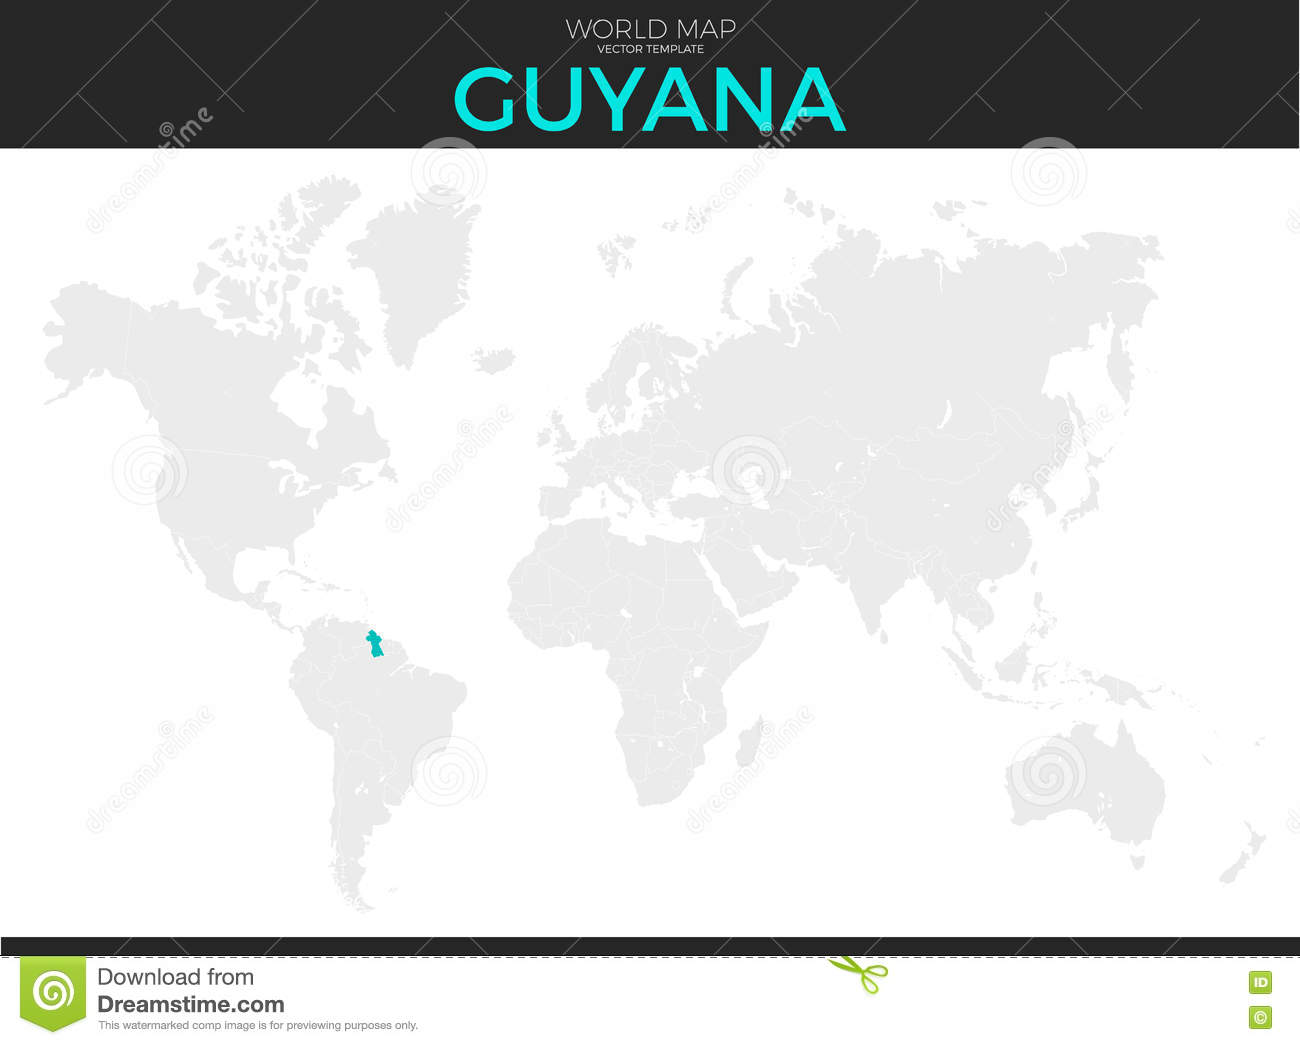 Where Is Guyana Located On The World Map.Co Operative Republic Of Guyana Location Map Stock Vector